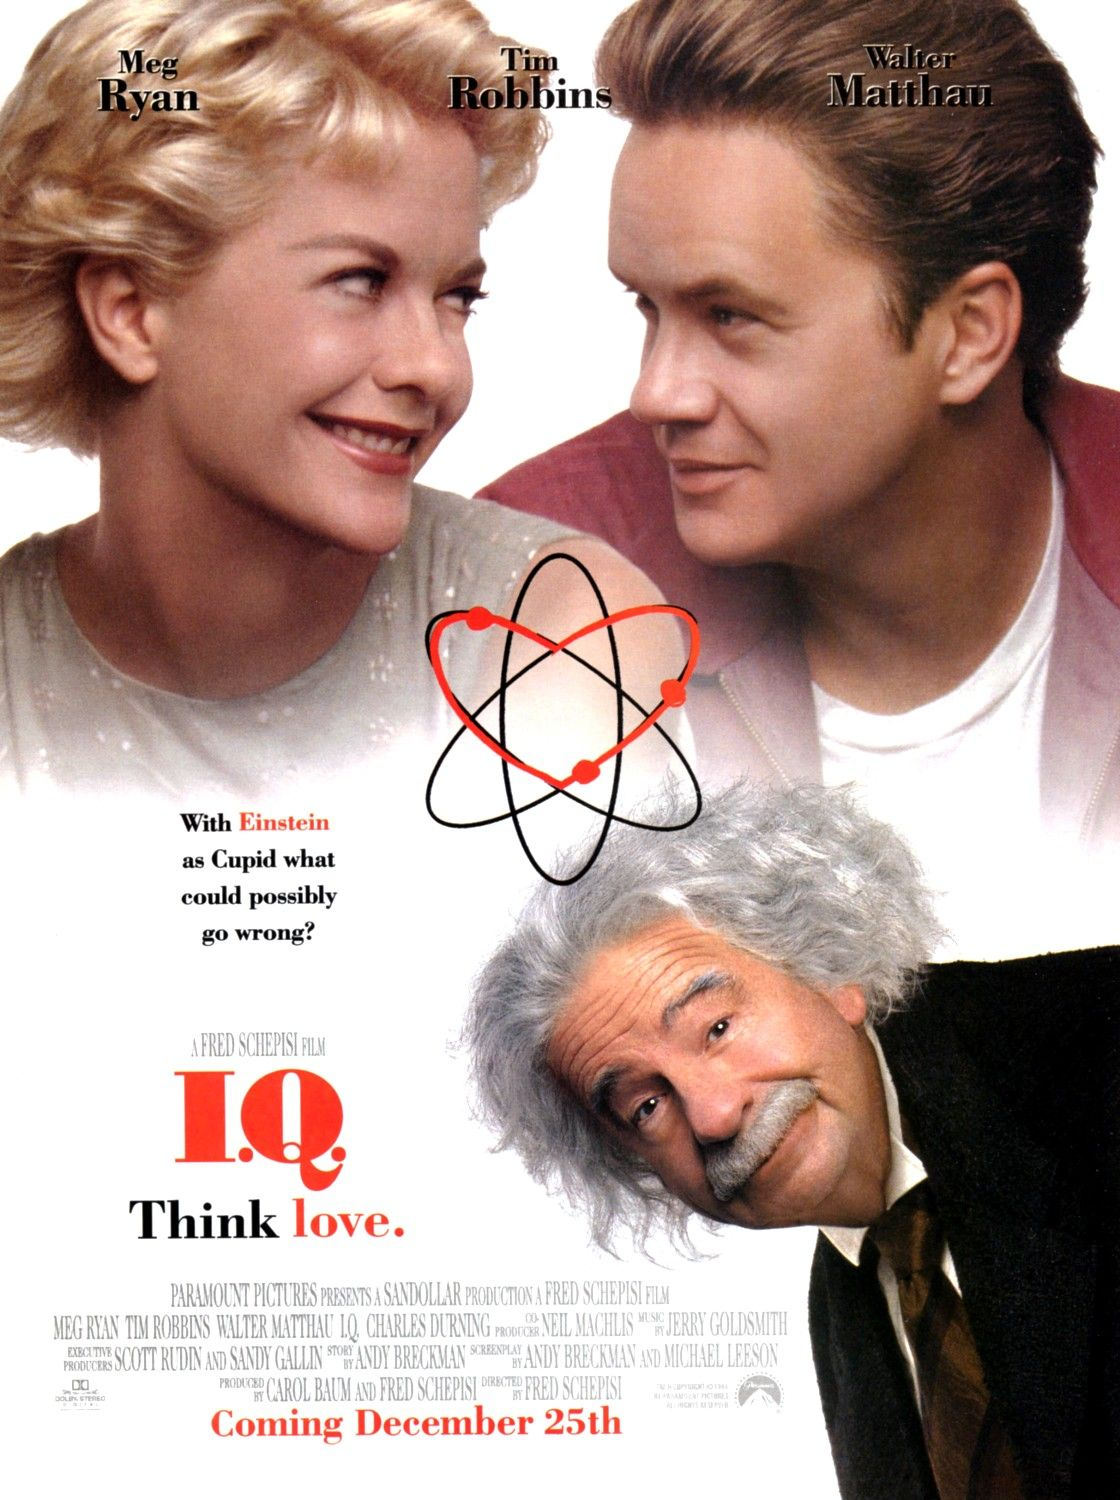 IQ ... think Love ... film with Meg Ryan - Tim Robbins - Walter Mattau ... with Einstein as Cupid what could possibly go wrong?